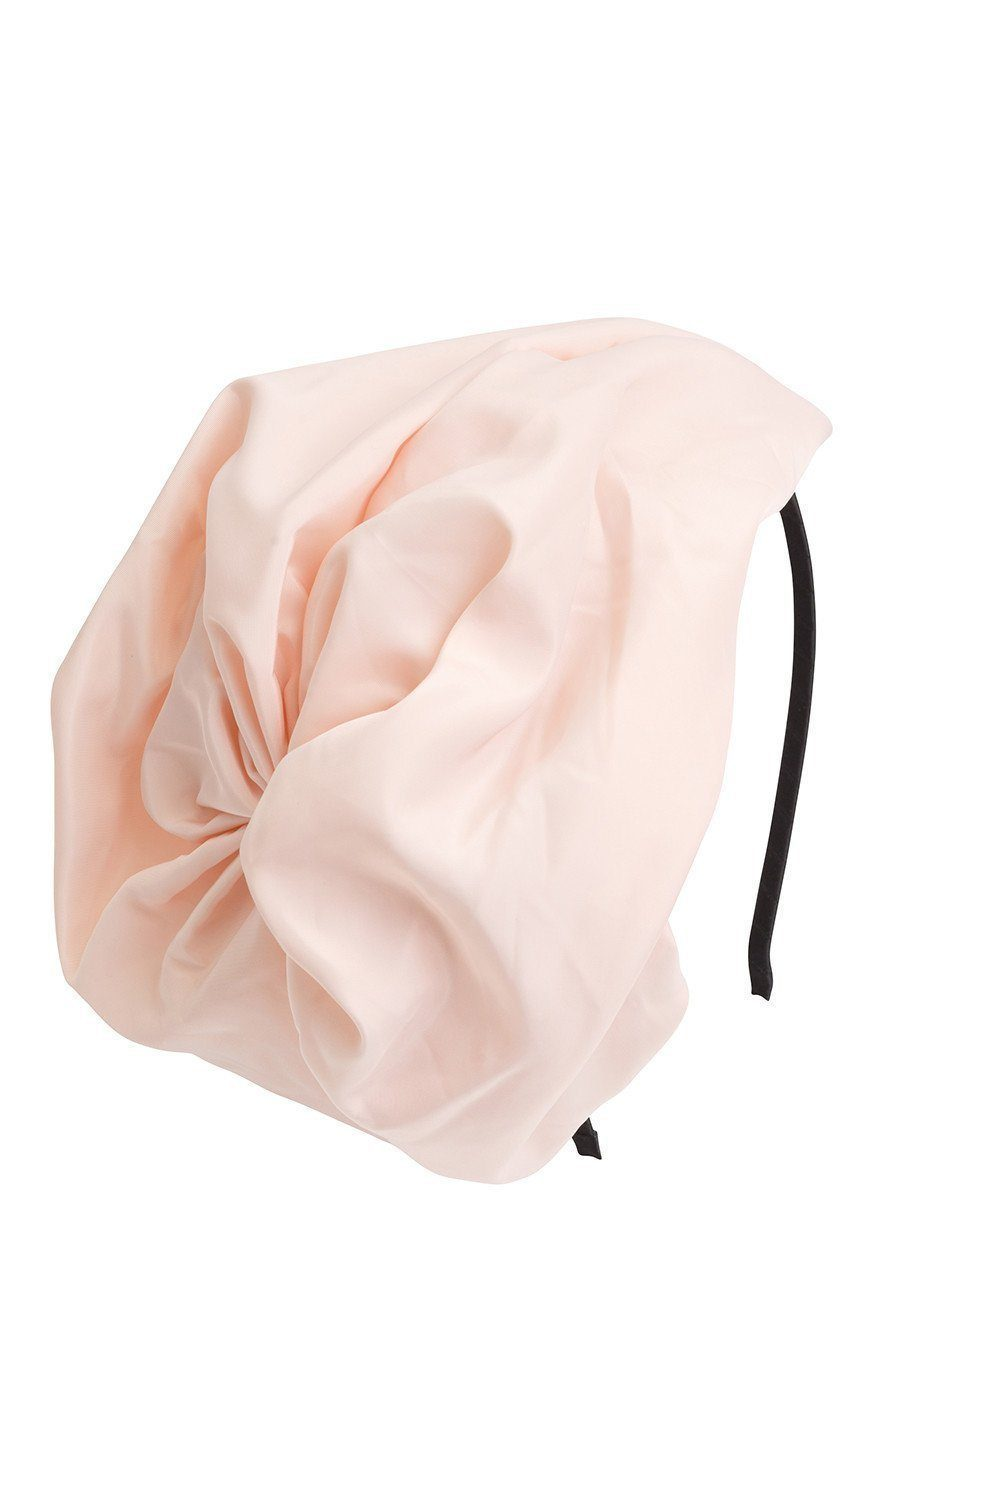 Petit Hat - Blush Taffeta - PROJECT 6, modest fashion